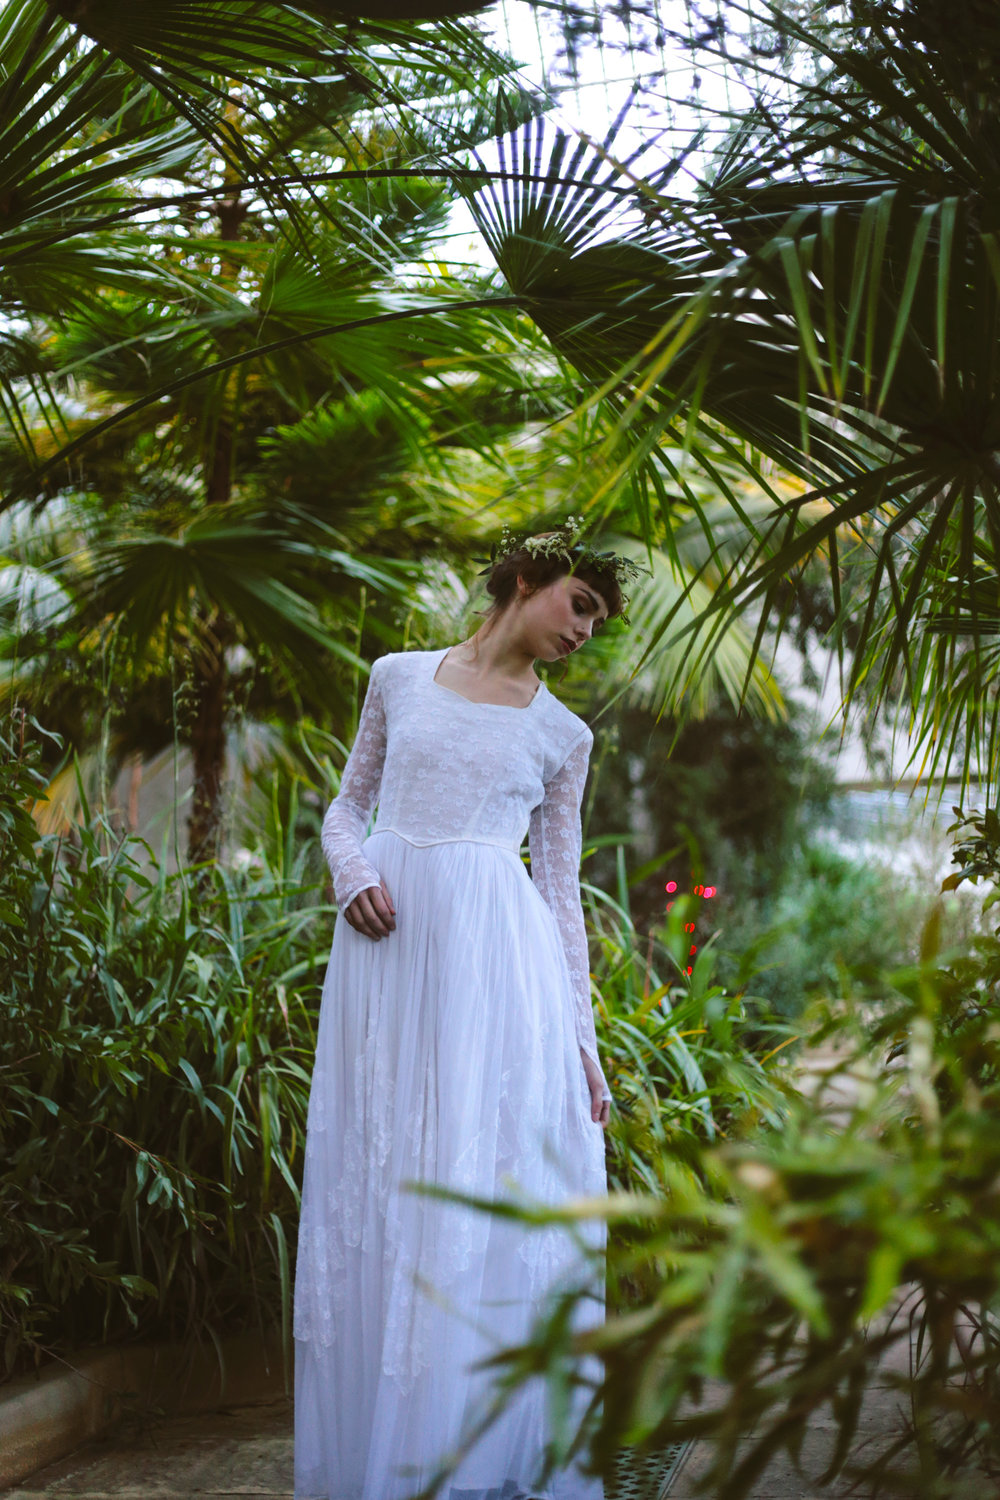 Winter-Bridal-Kate-Beaumont-Shelley-Richmond-Vintage-Wedding-Dress-18.jpg